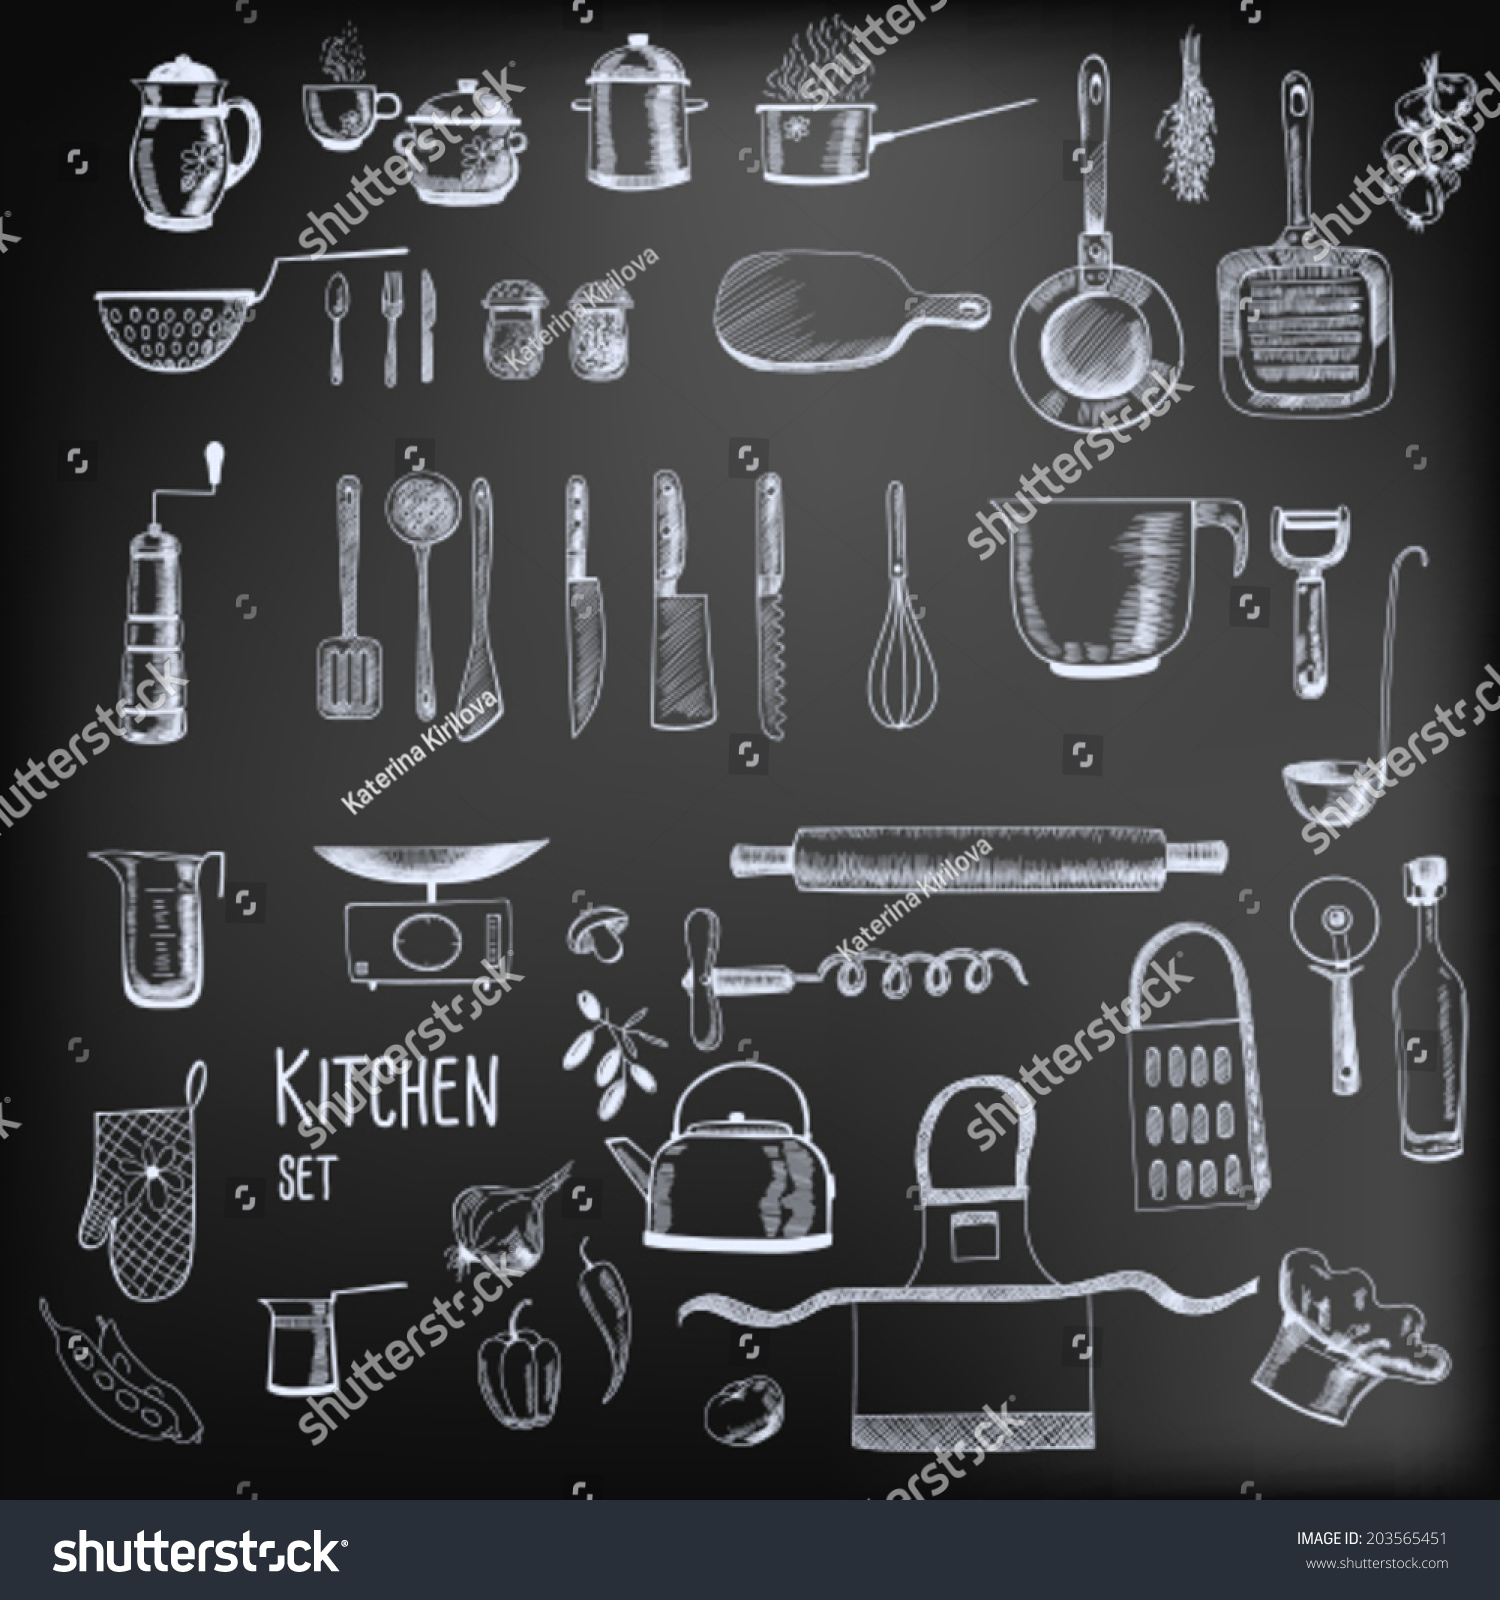 Kitchen Chalkboard Kitchen Set Large Collection Hand Drawn Stock Vector 203565451